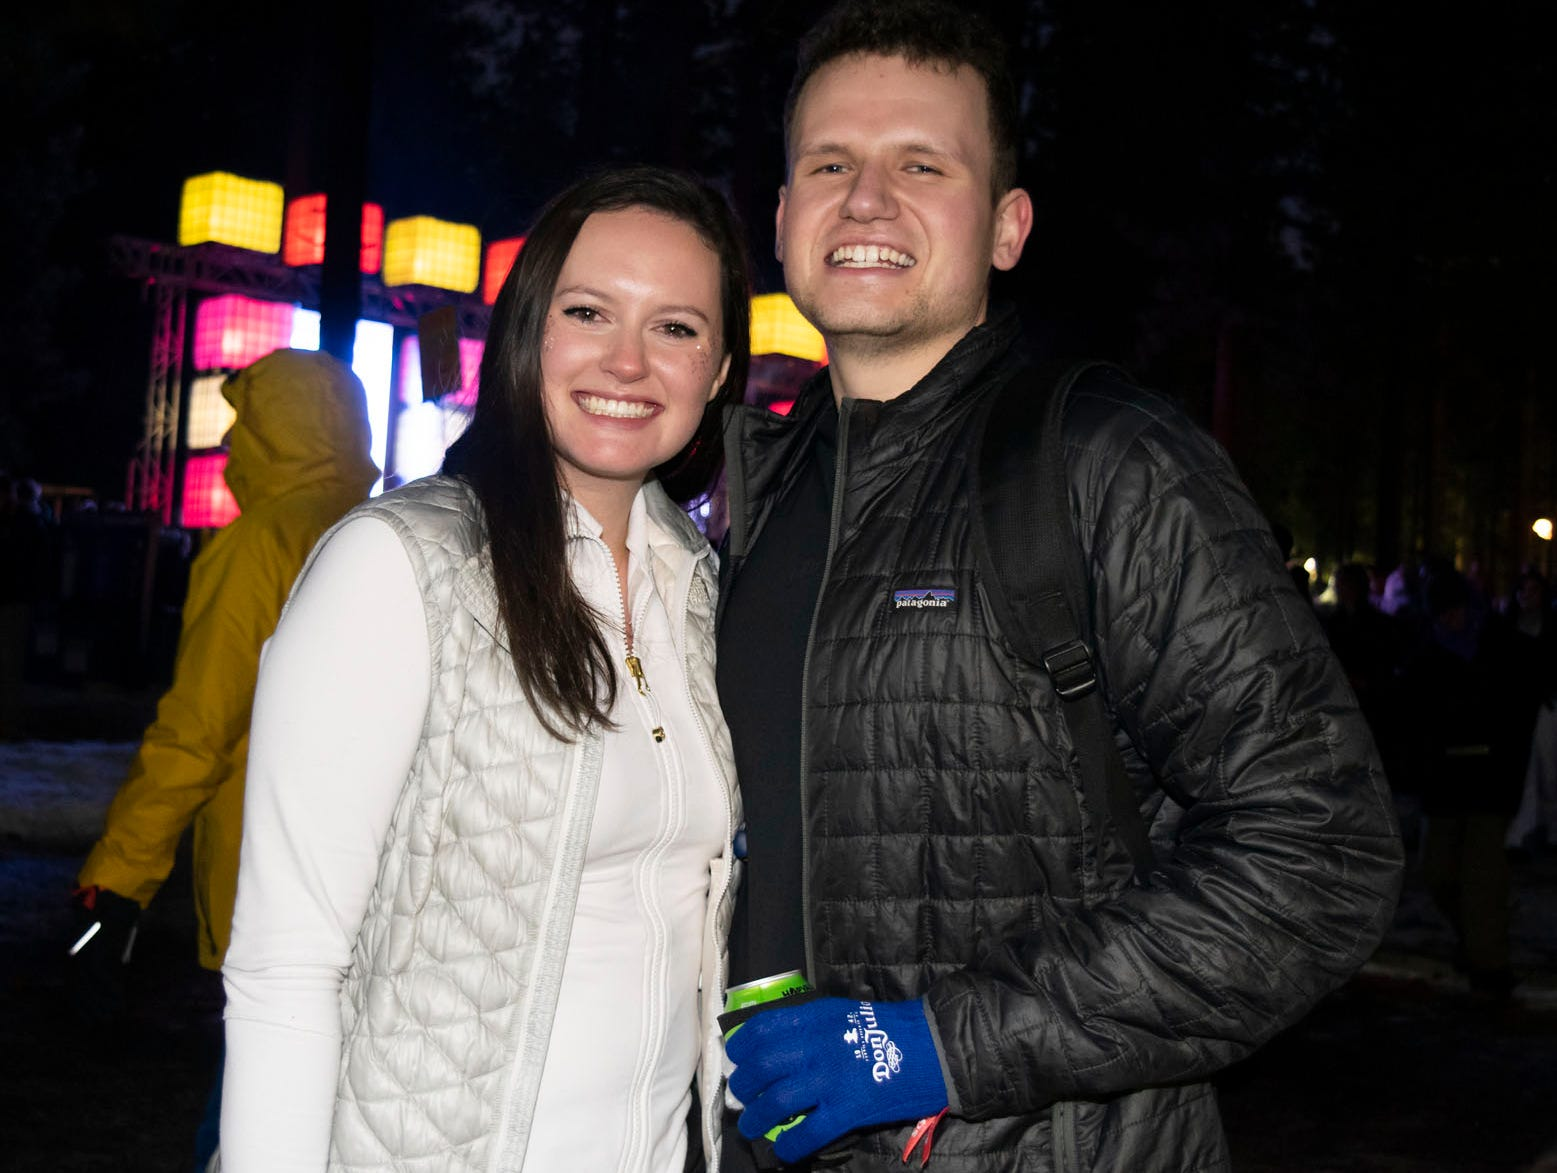 Jessica Crawford and Robert Brown attend the Snowglobe Music Festival on Saturday, Dec. 29, 2018. South Lake Tahoe, Calif.